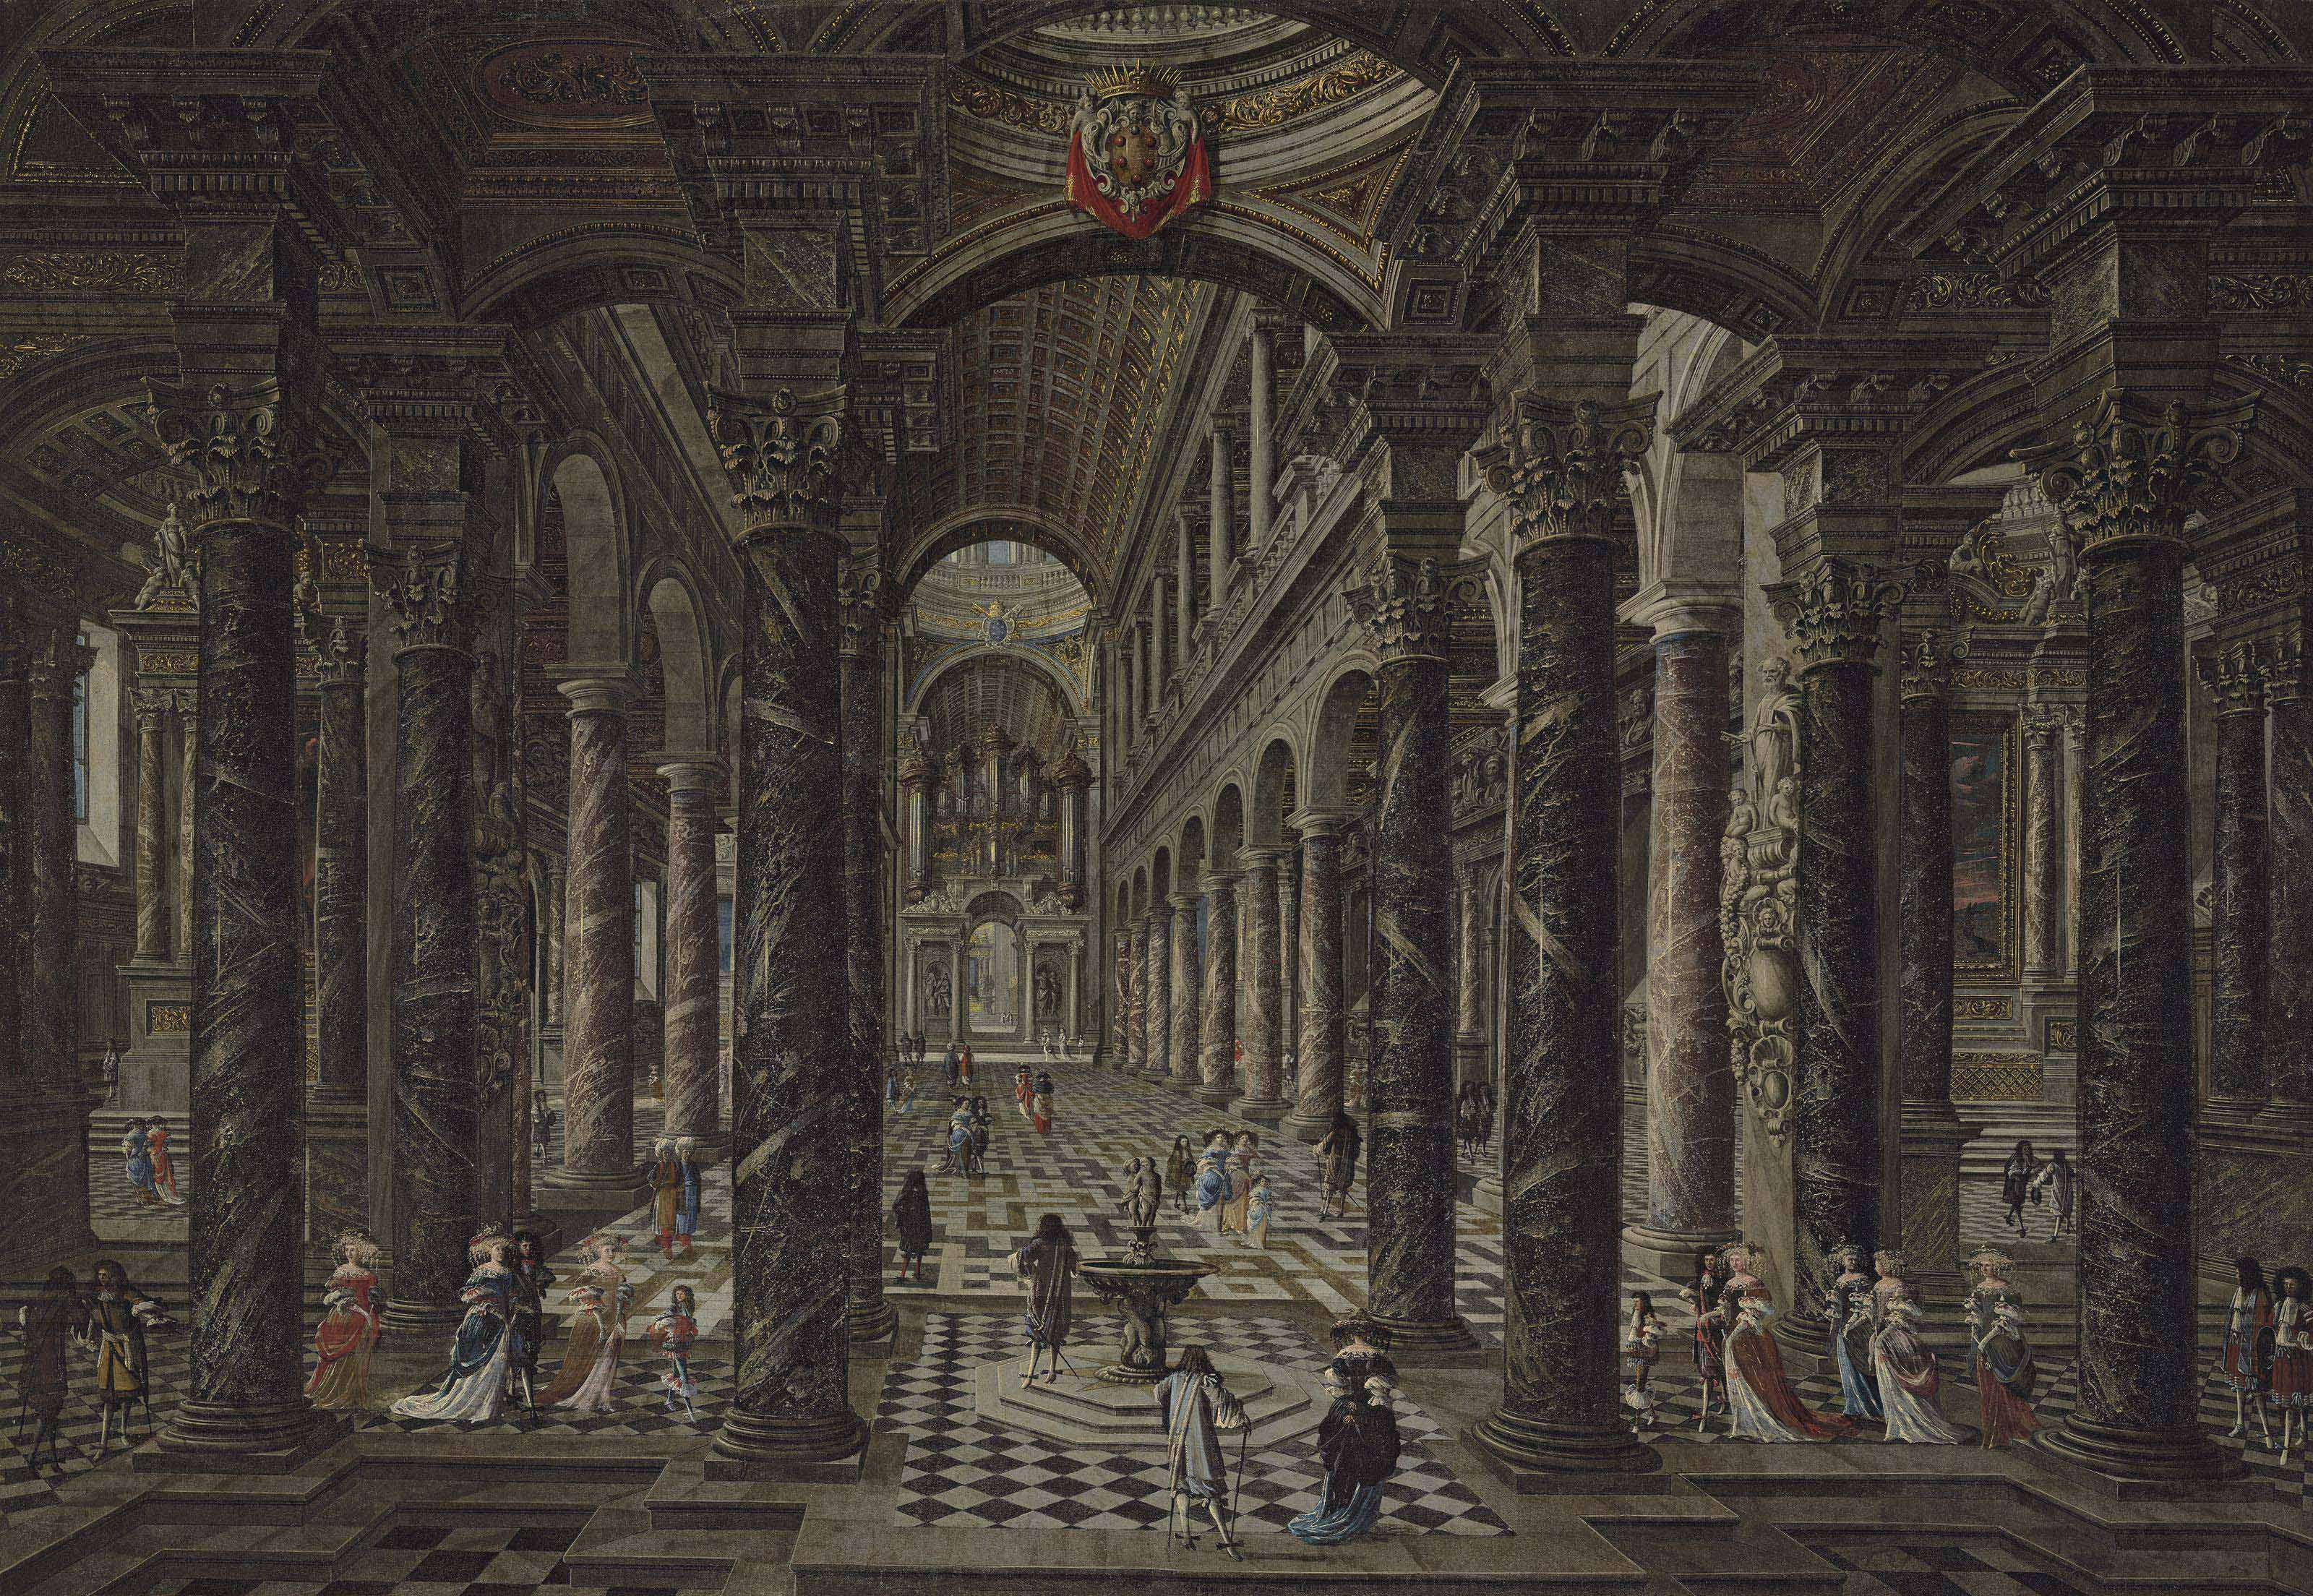 Interior of a Baroque church with elegant figures